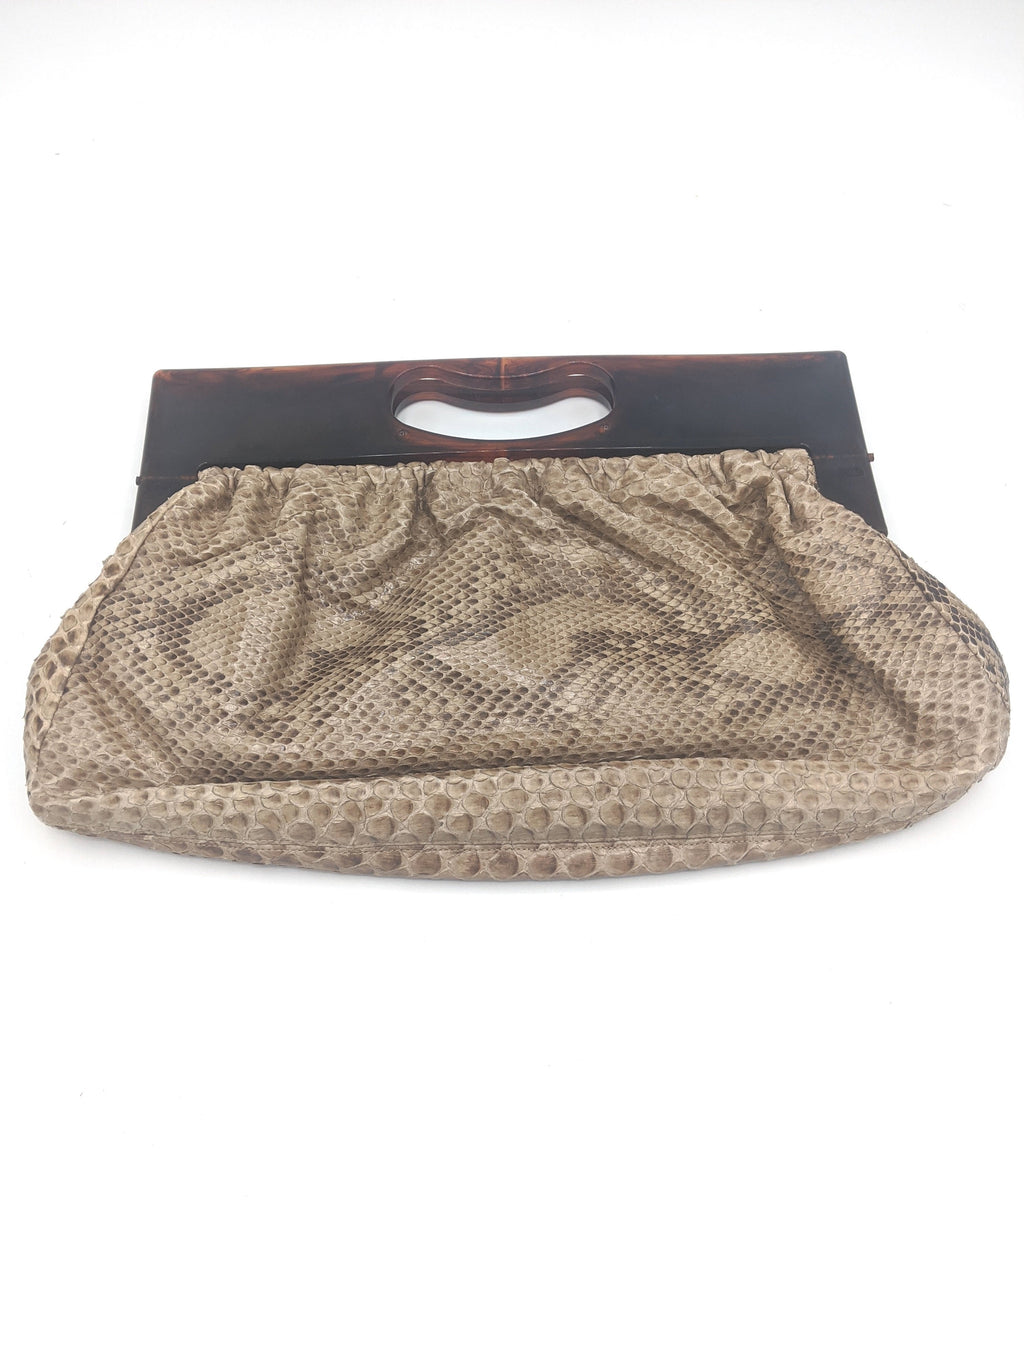 70s Purse Tan Snakeskin Clutch with Lucite Frame  FRONT 1 of 3